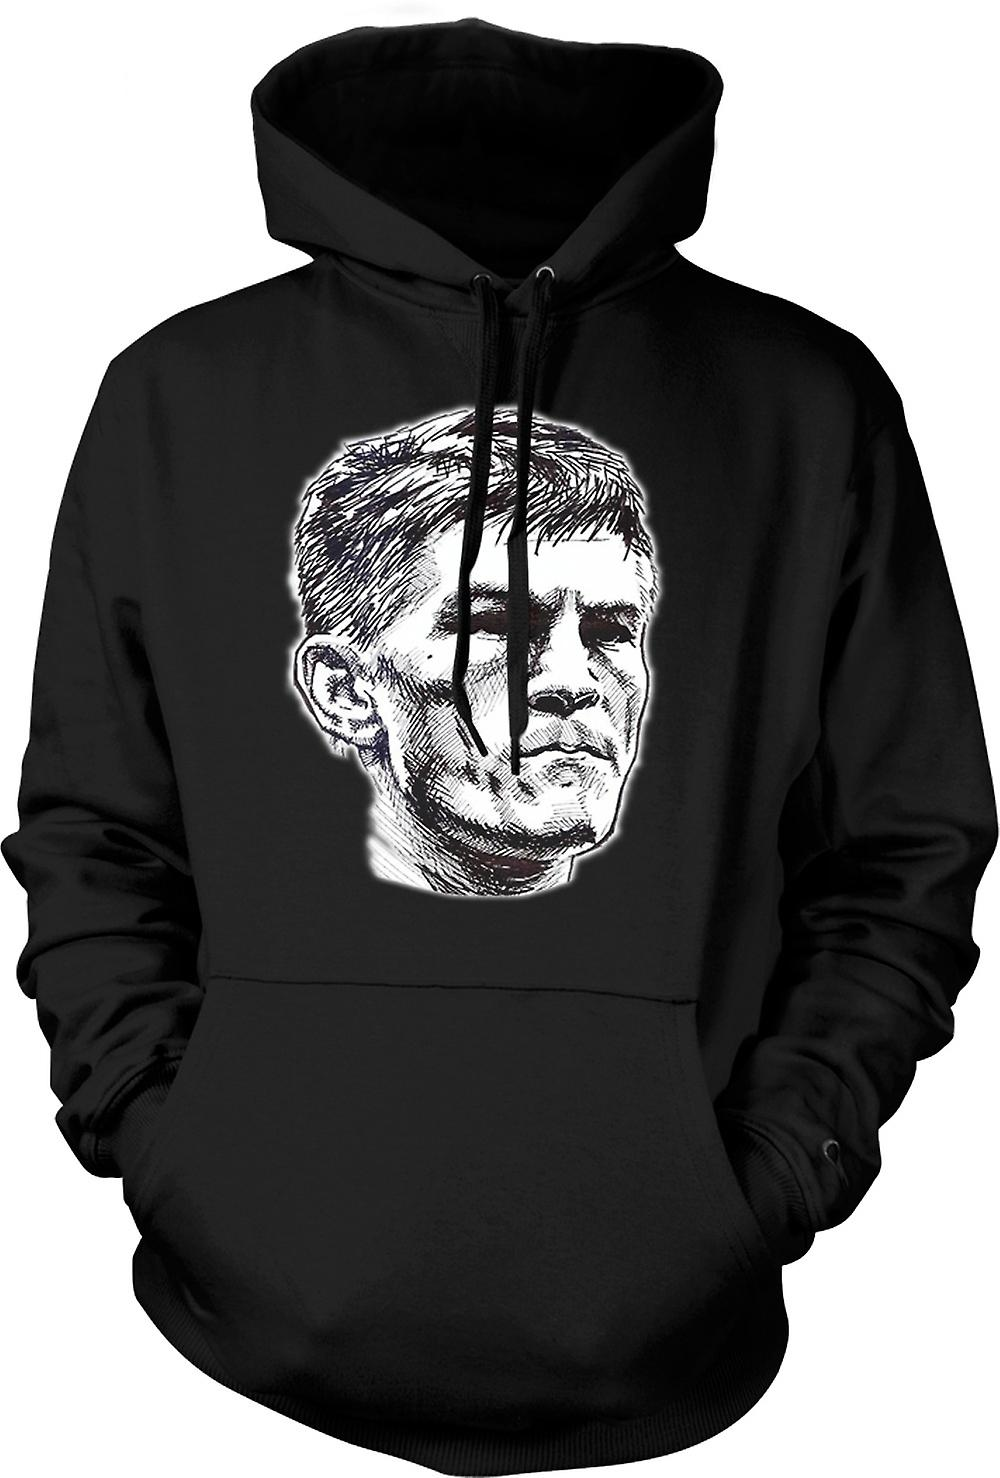 Mens Hoodie - Ricky Hatton - Boxing Champ